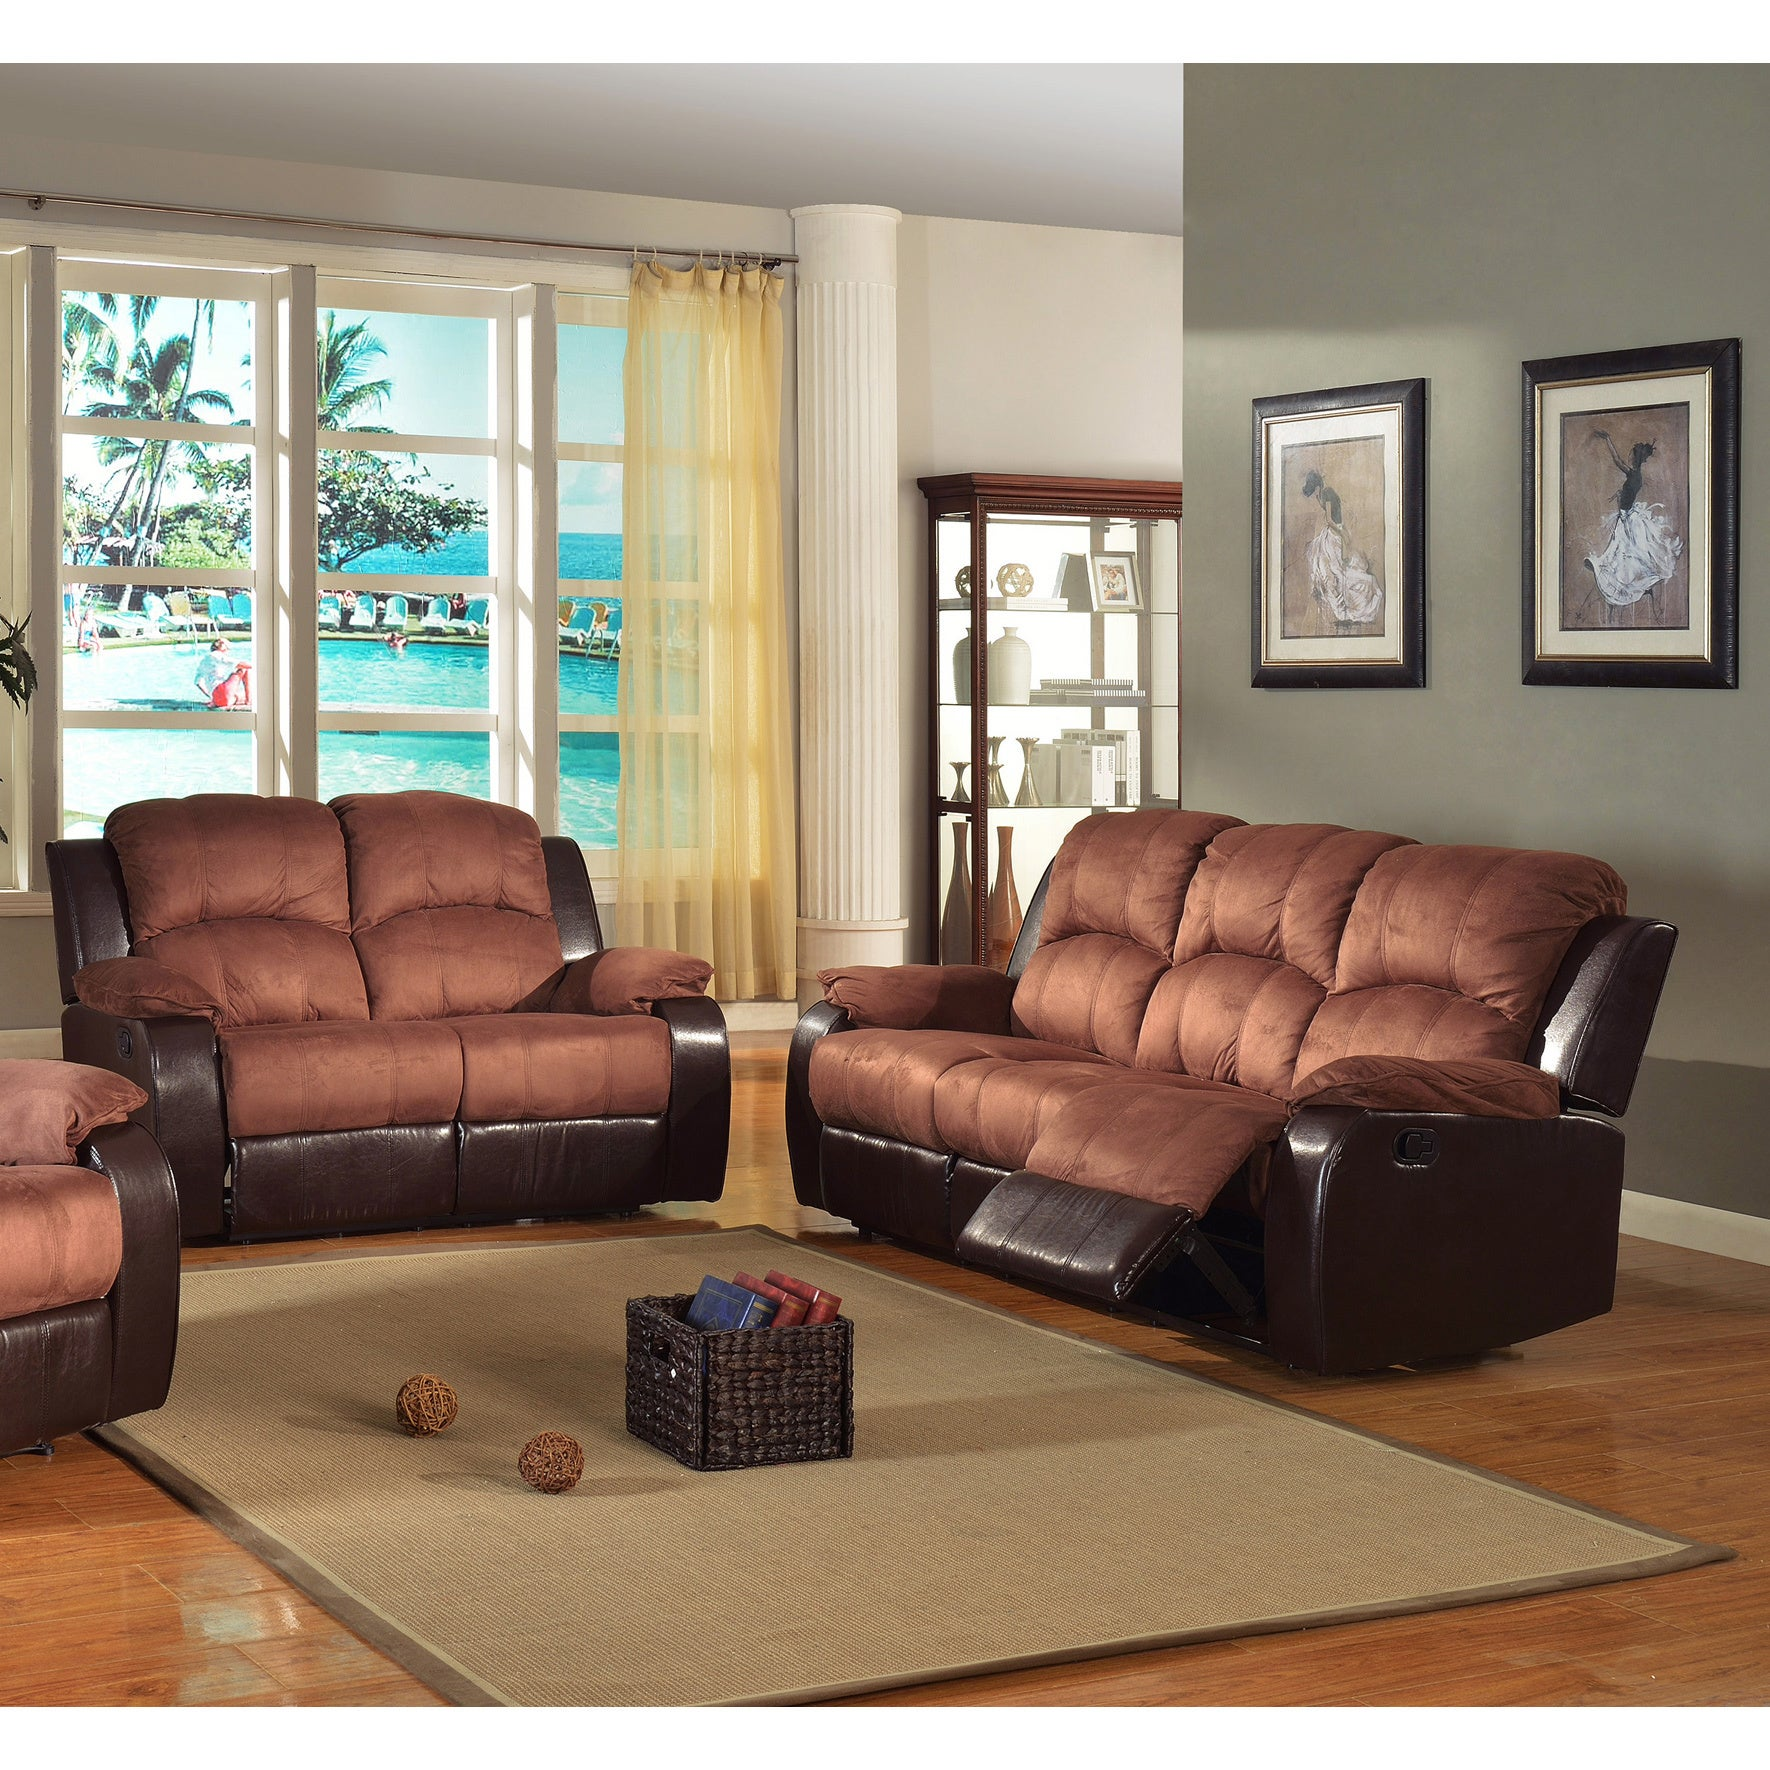 Pamela Two Tone Reclining Sofa And Loveseat Set Overstock 6535492